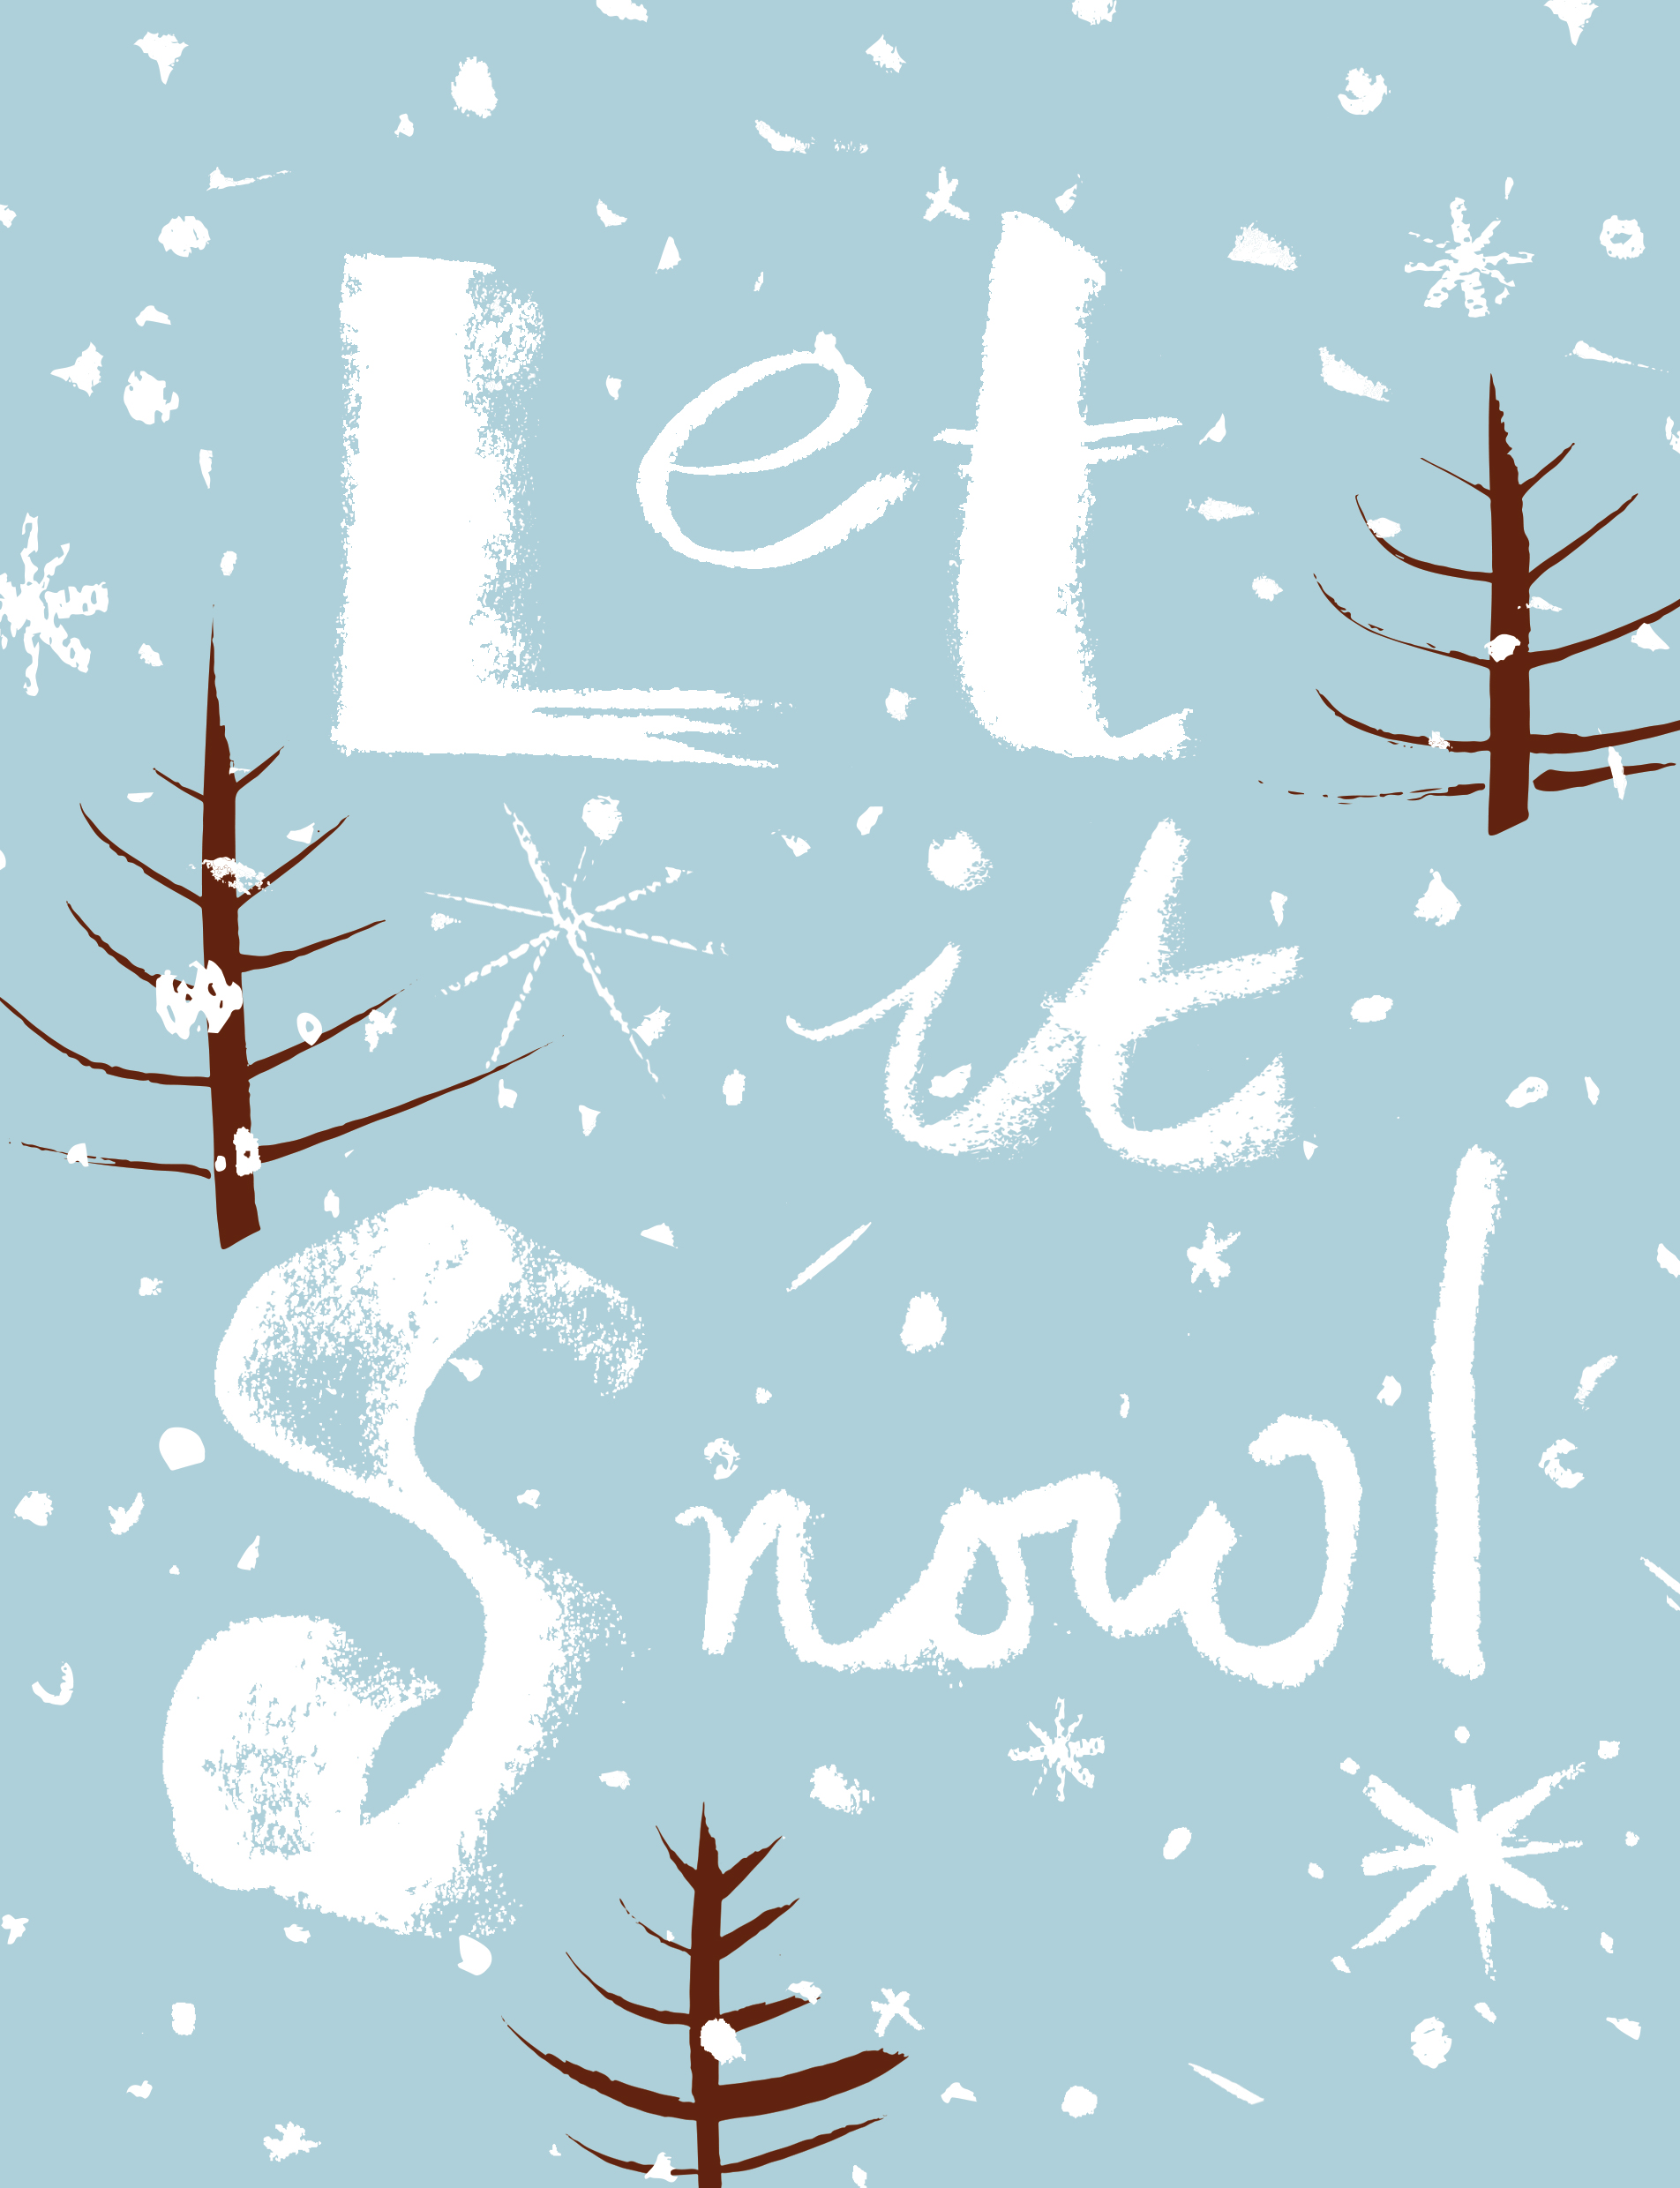 let-it-snow---gabriella-buckingham.jpg